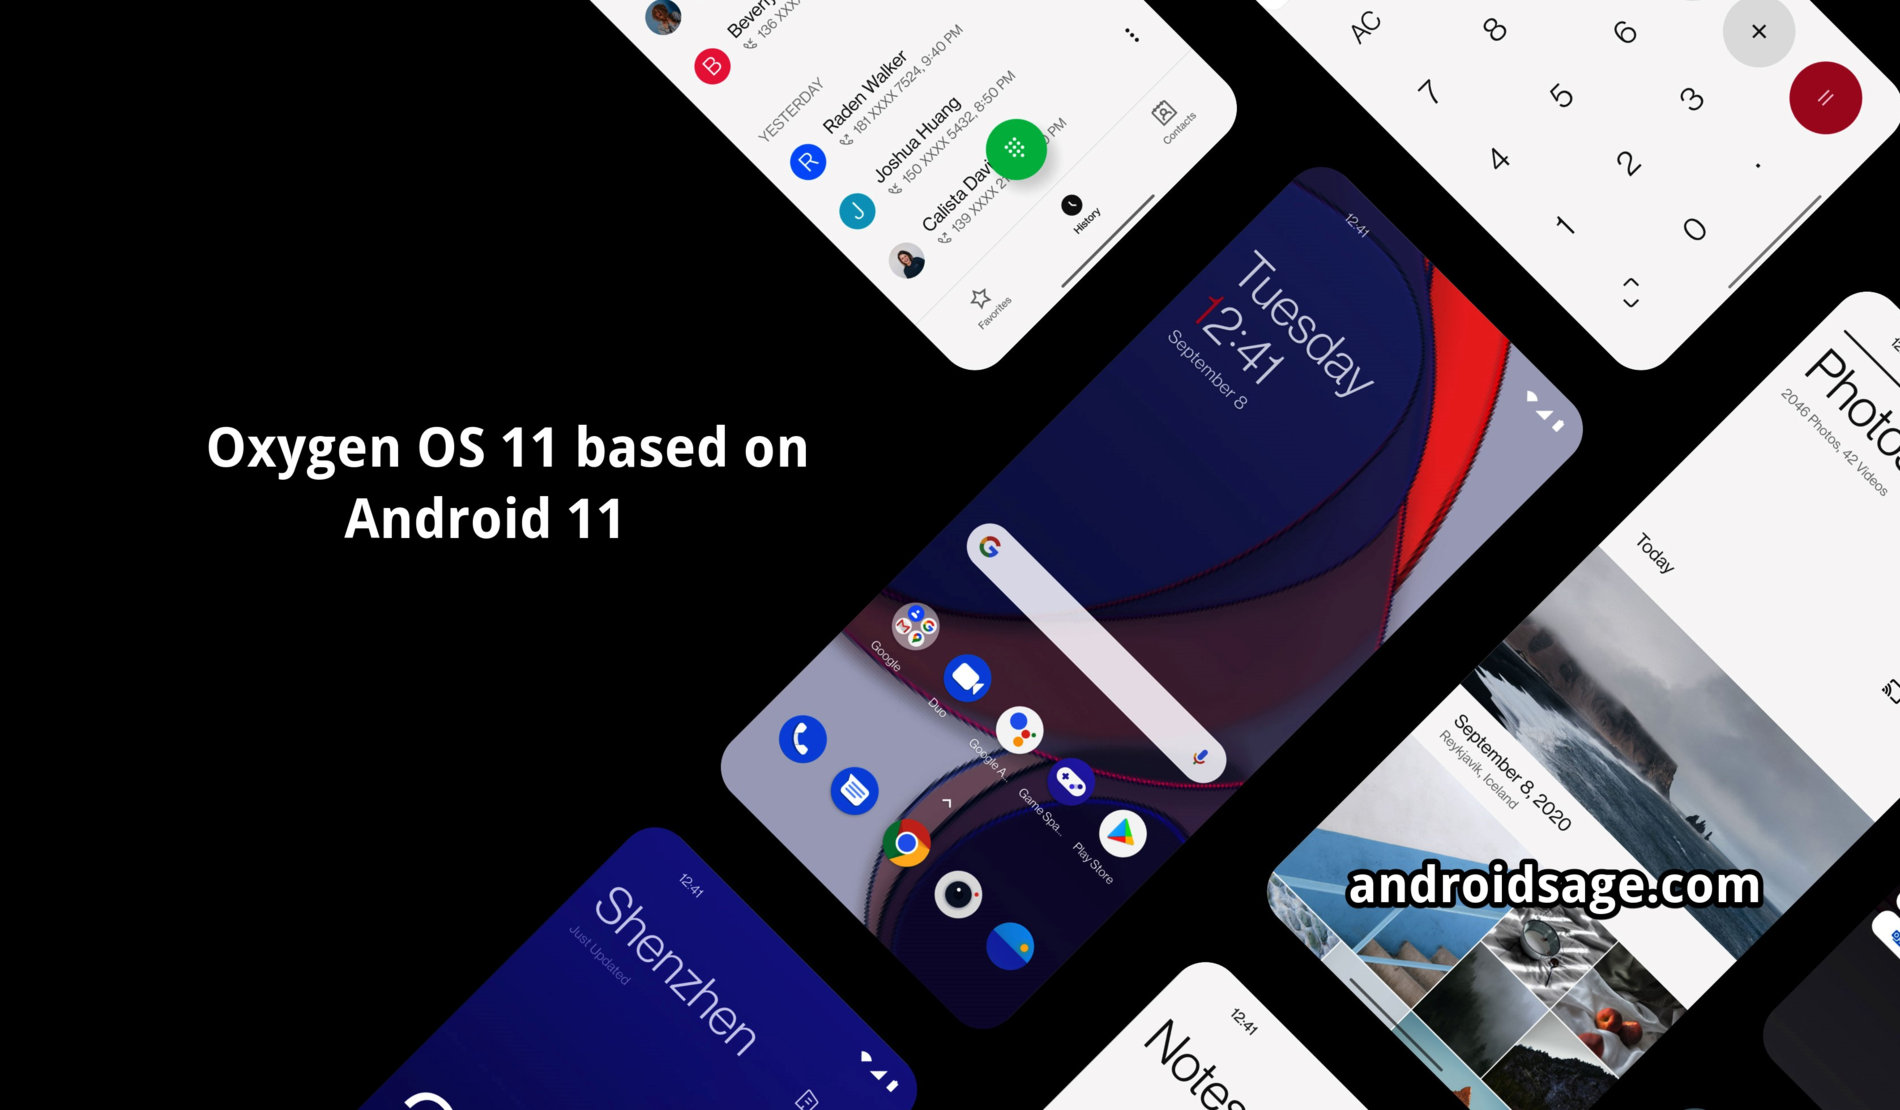 OnePlus Oxygen OS 11 based on Android 11